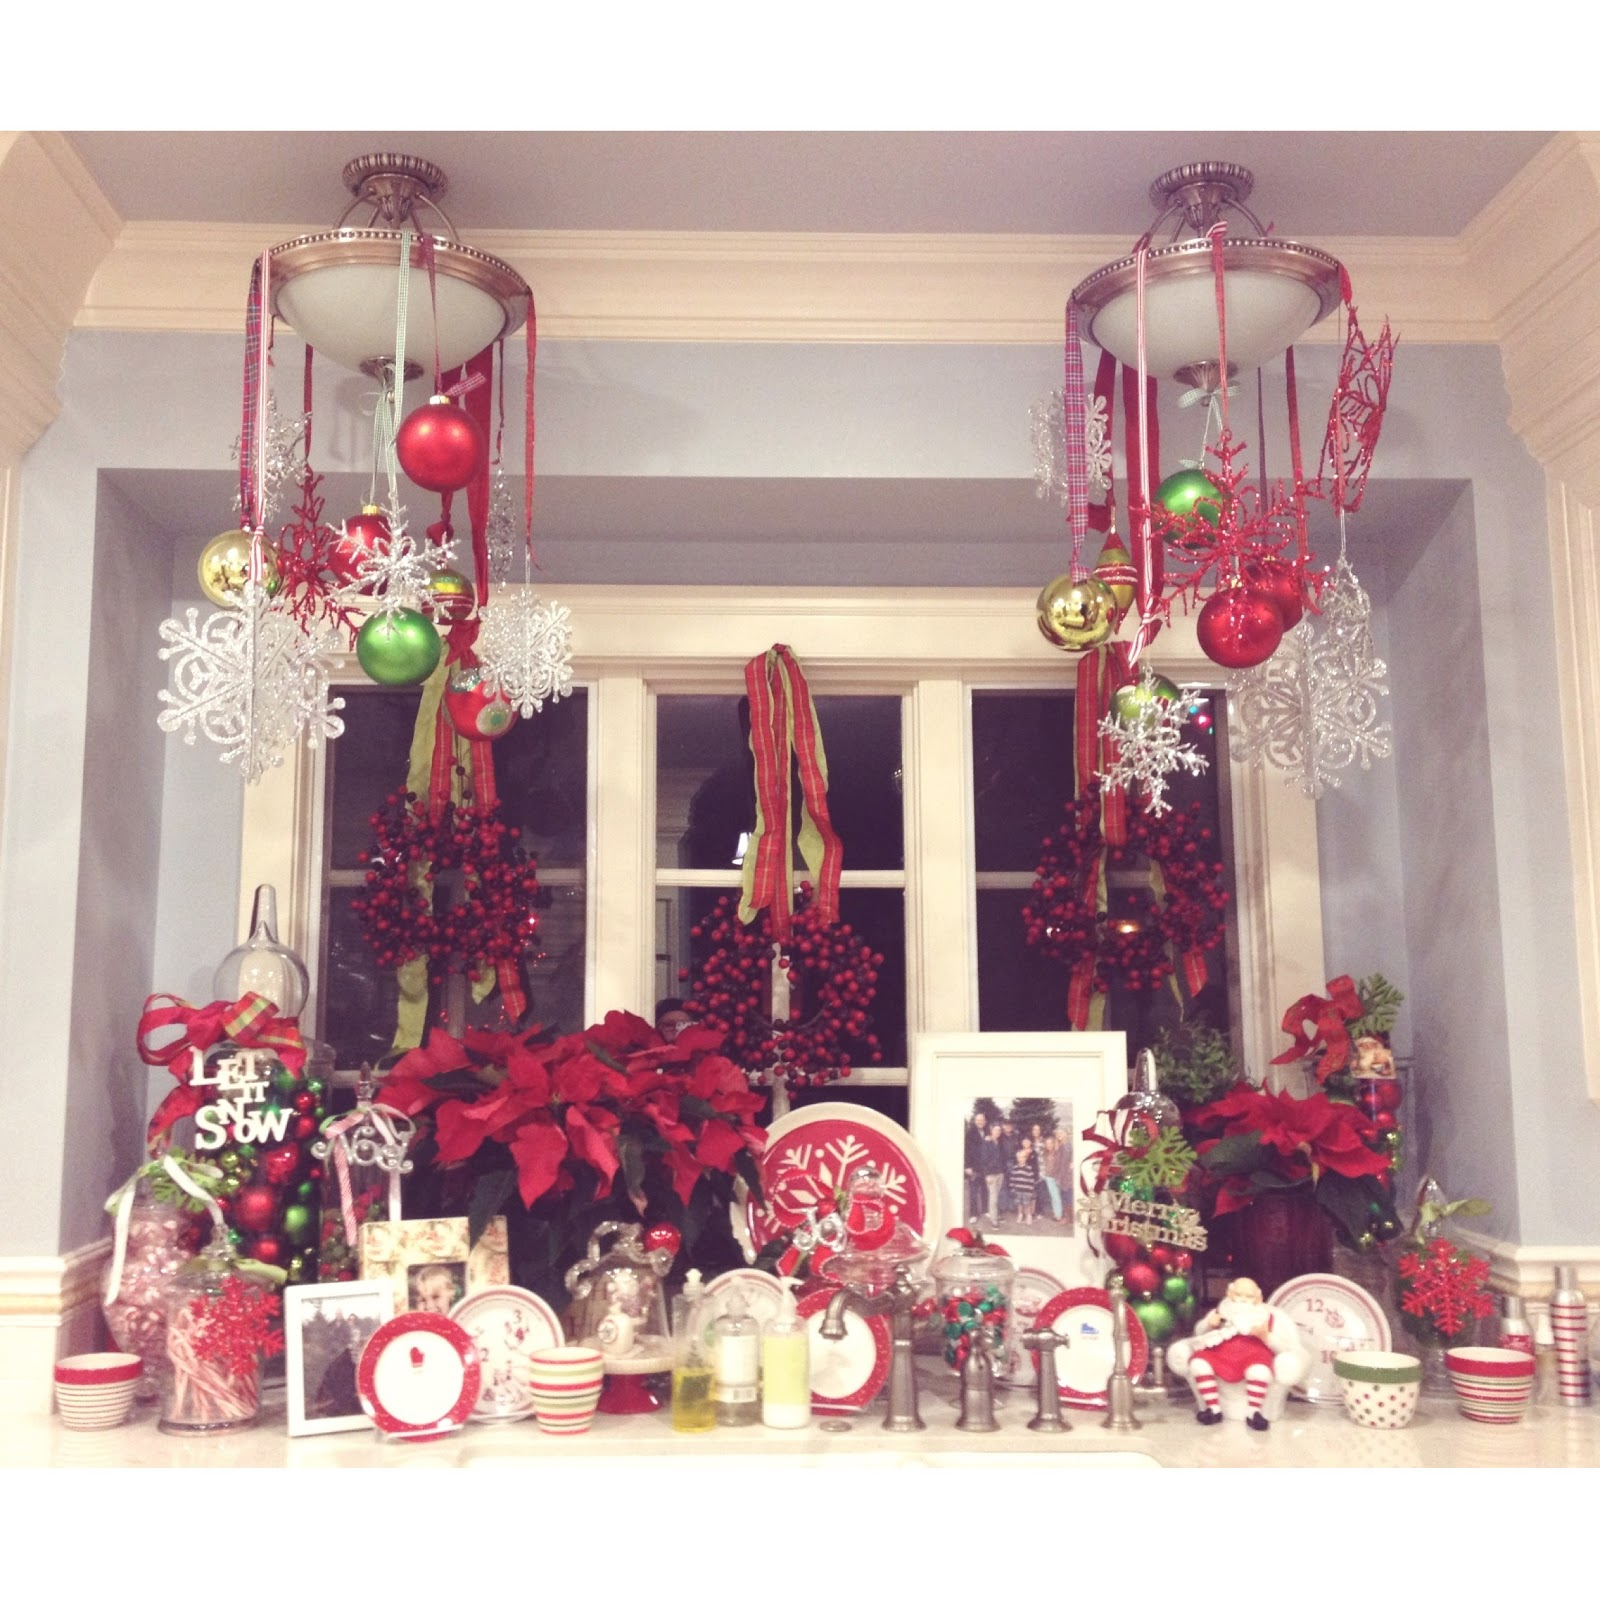 Christmas Decorations For Home Windows: Window Decorations For Christmas